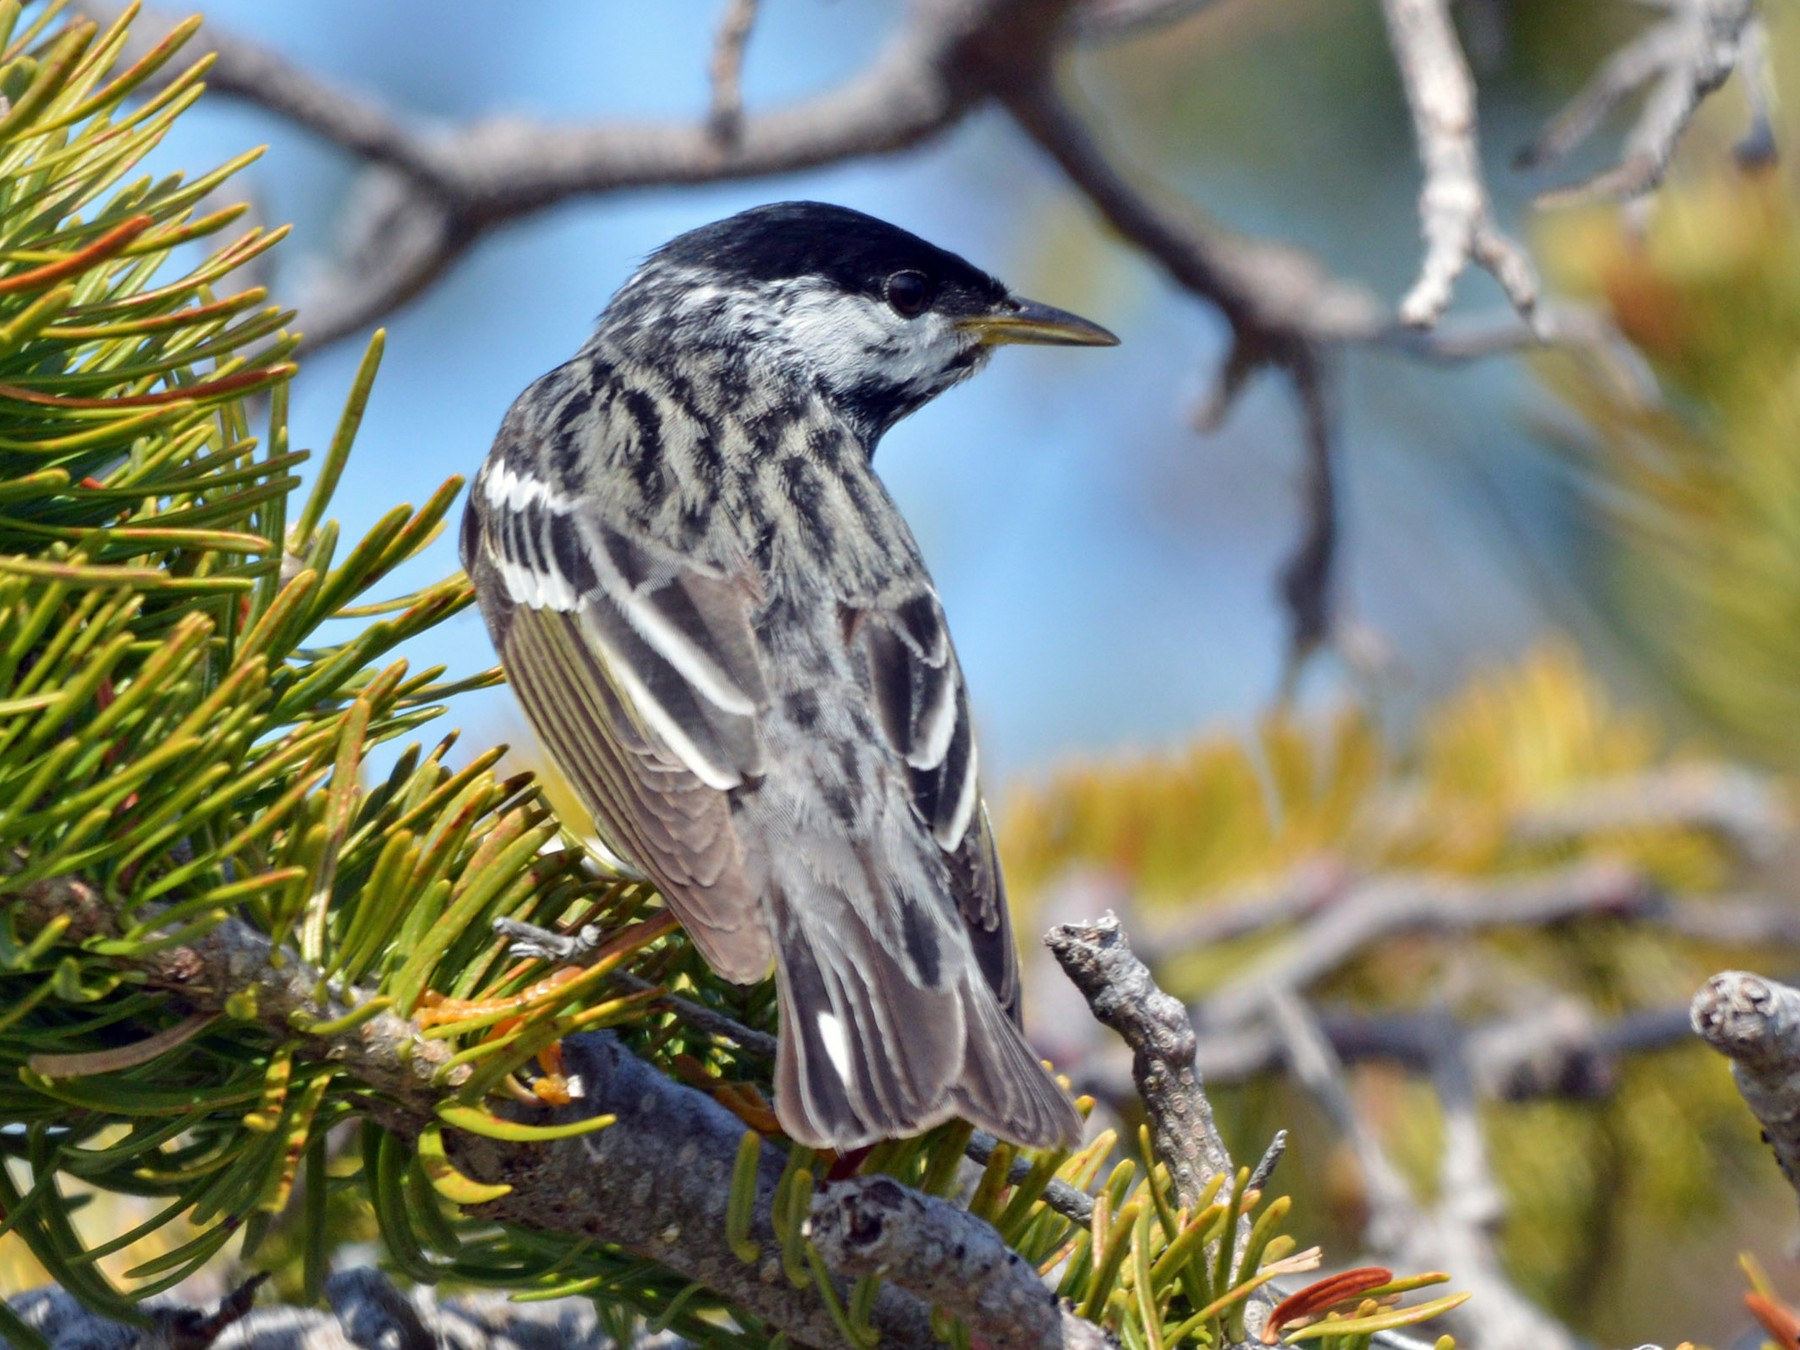 Blackpoll Warbler - Kathy Marche